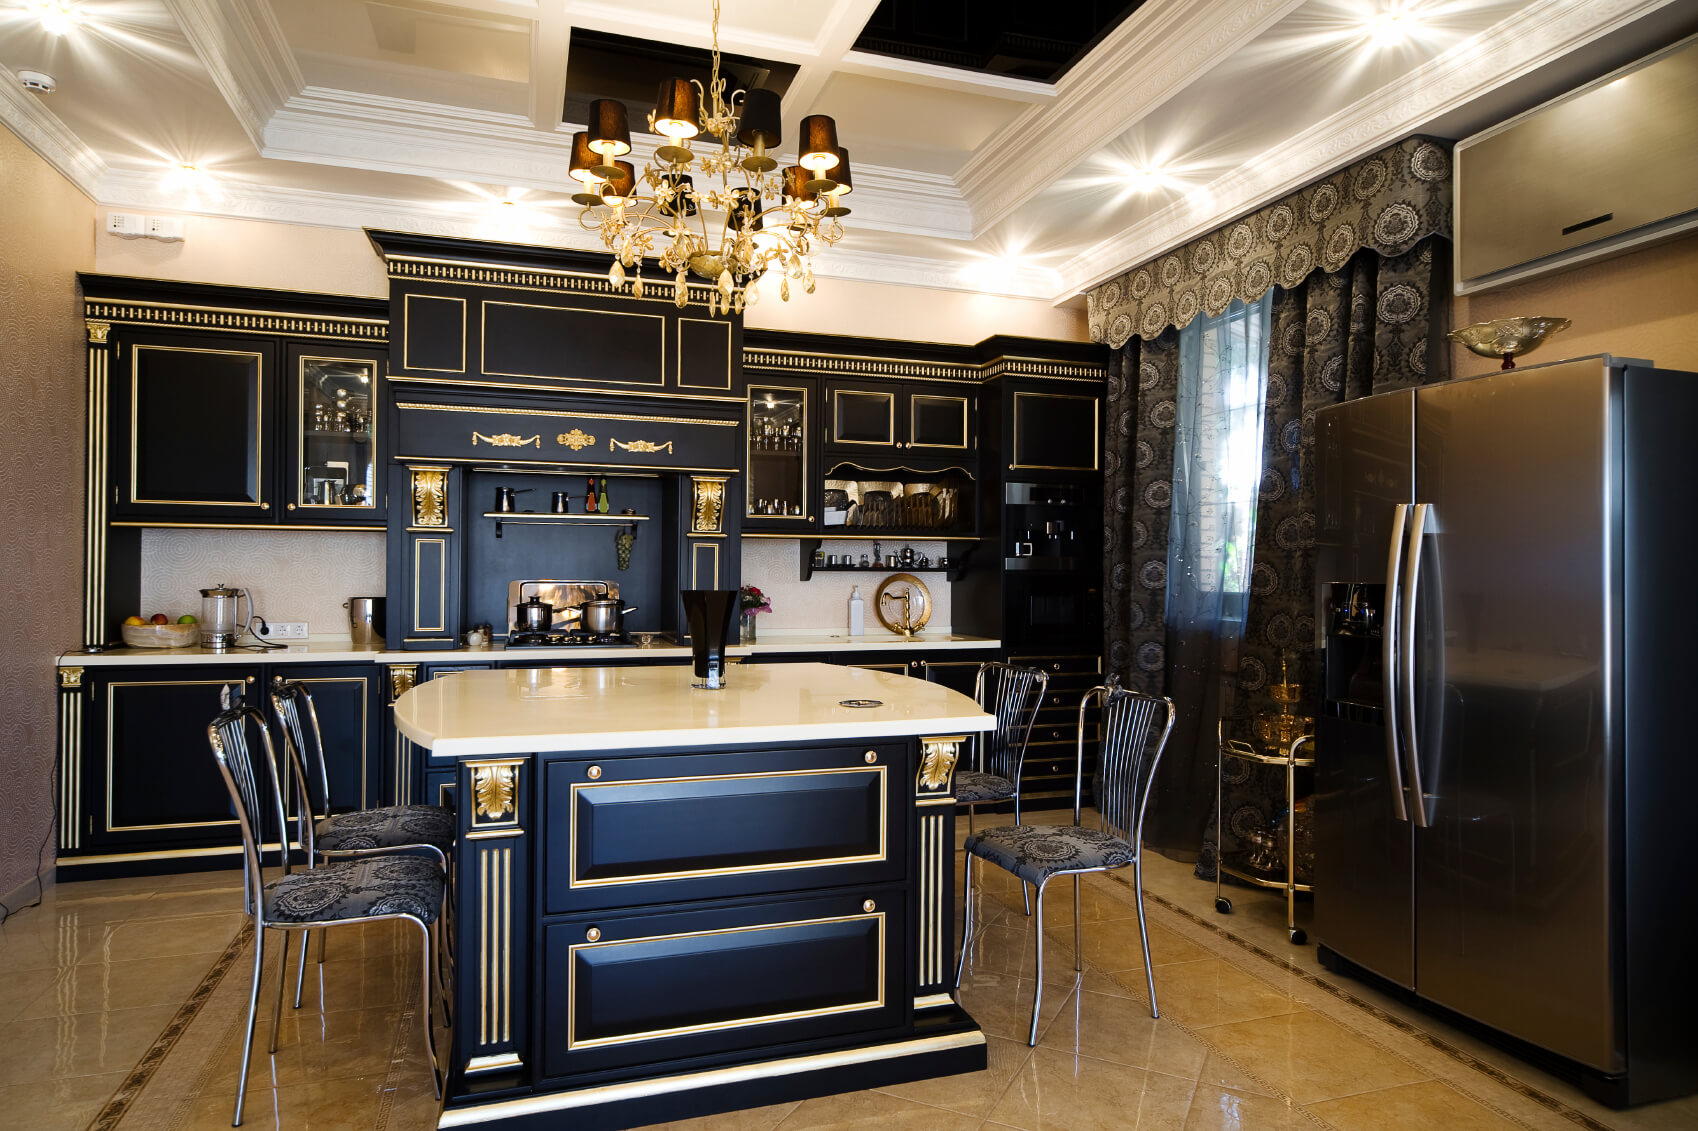 Ultra Luxurious Kitchen Features Gilded Black Wood Cabinetry Over Beige  Marble Flooring. White Marble Countertops